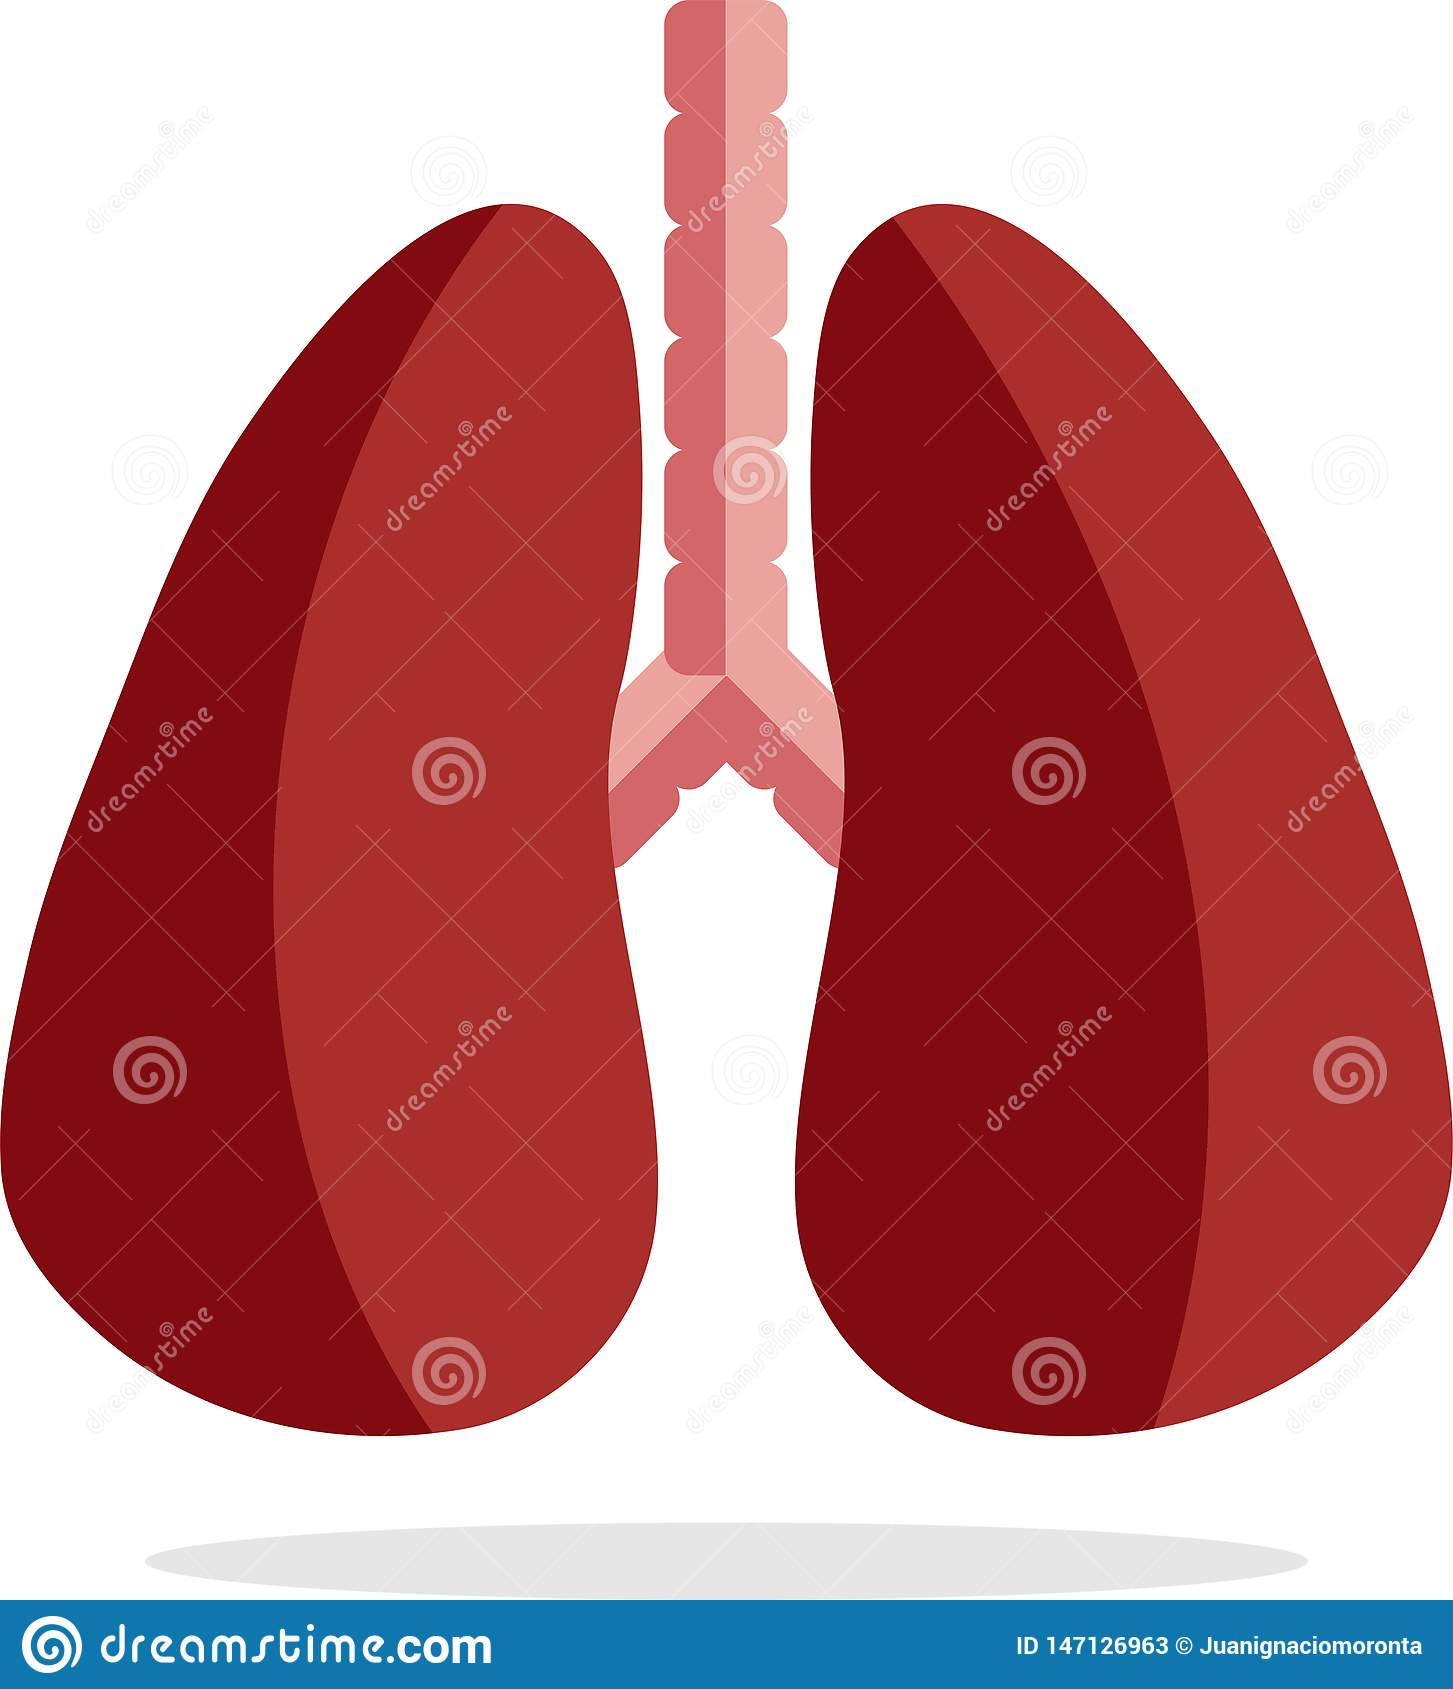 Lung icon, flat style, isolated on white background. Anatomy, concept of medicine